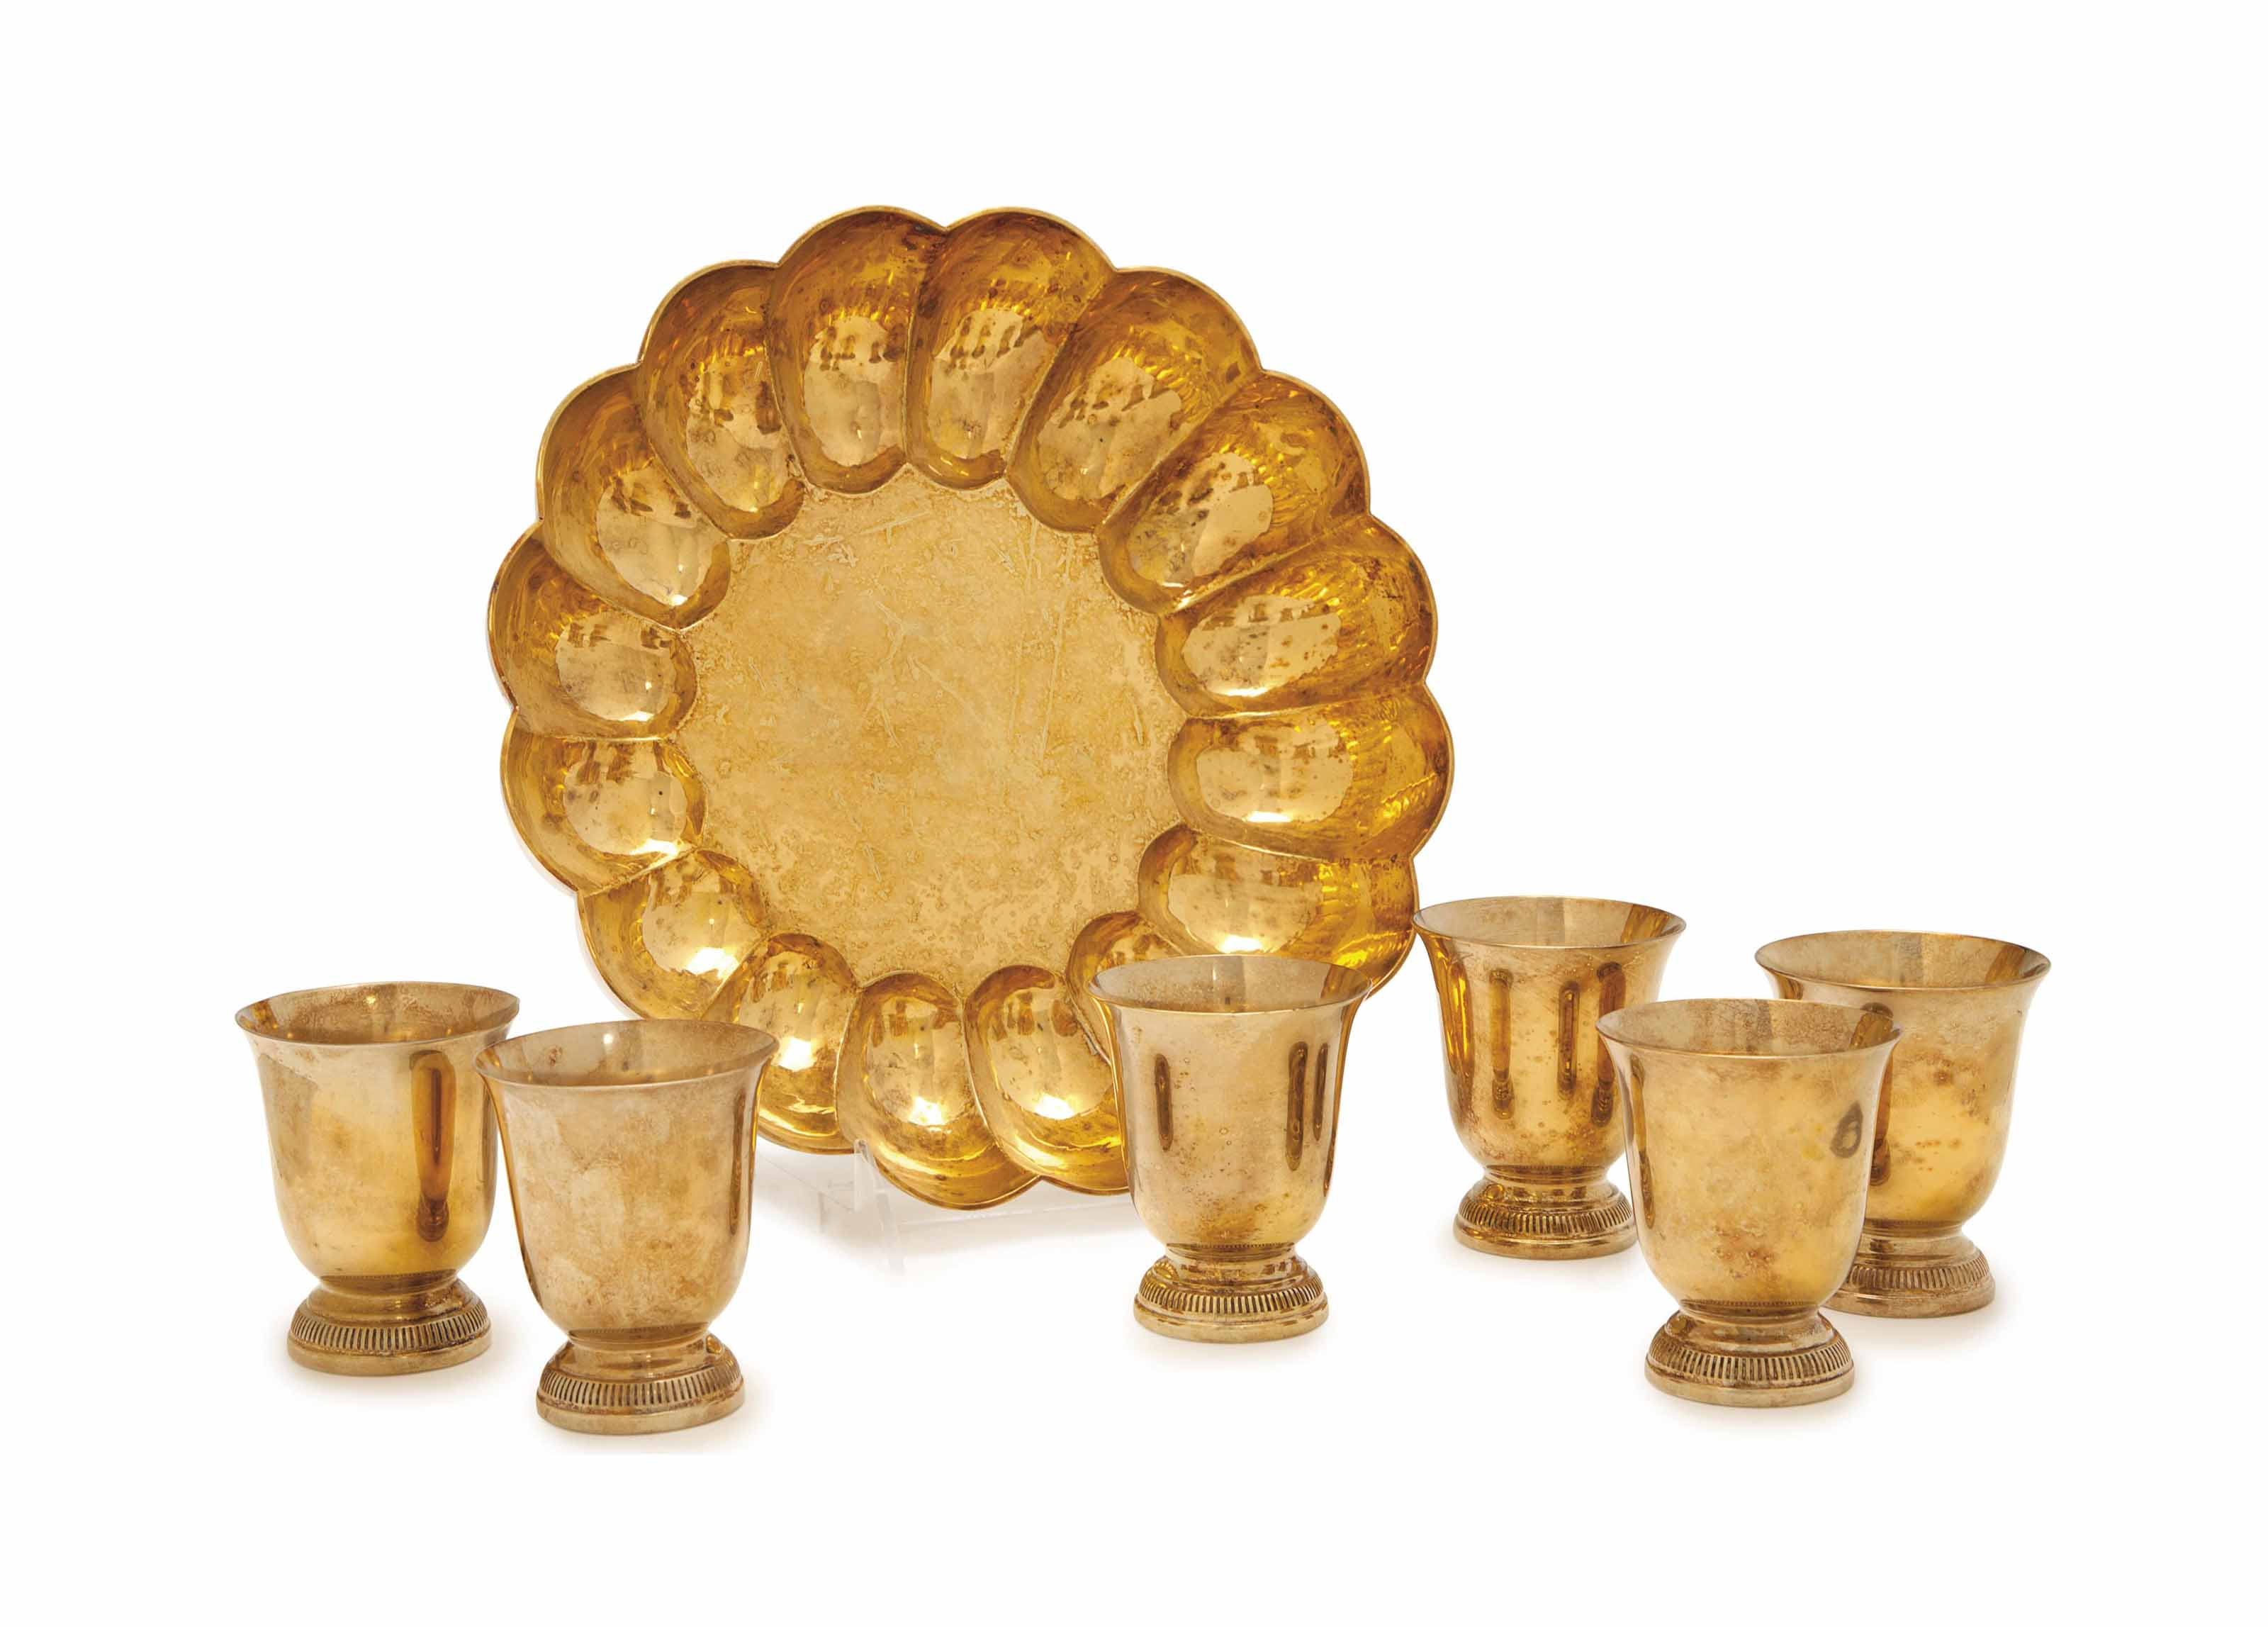 AN ENGLISH SILVER-GILT SCALLOPED CENTERBOWL, A SET OF EIGHT FRENCH GILT-PLATE BEAKERS,